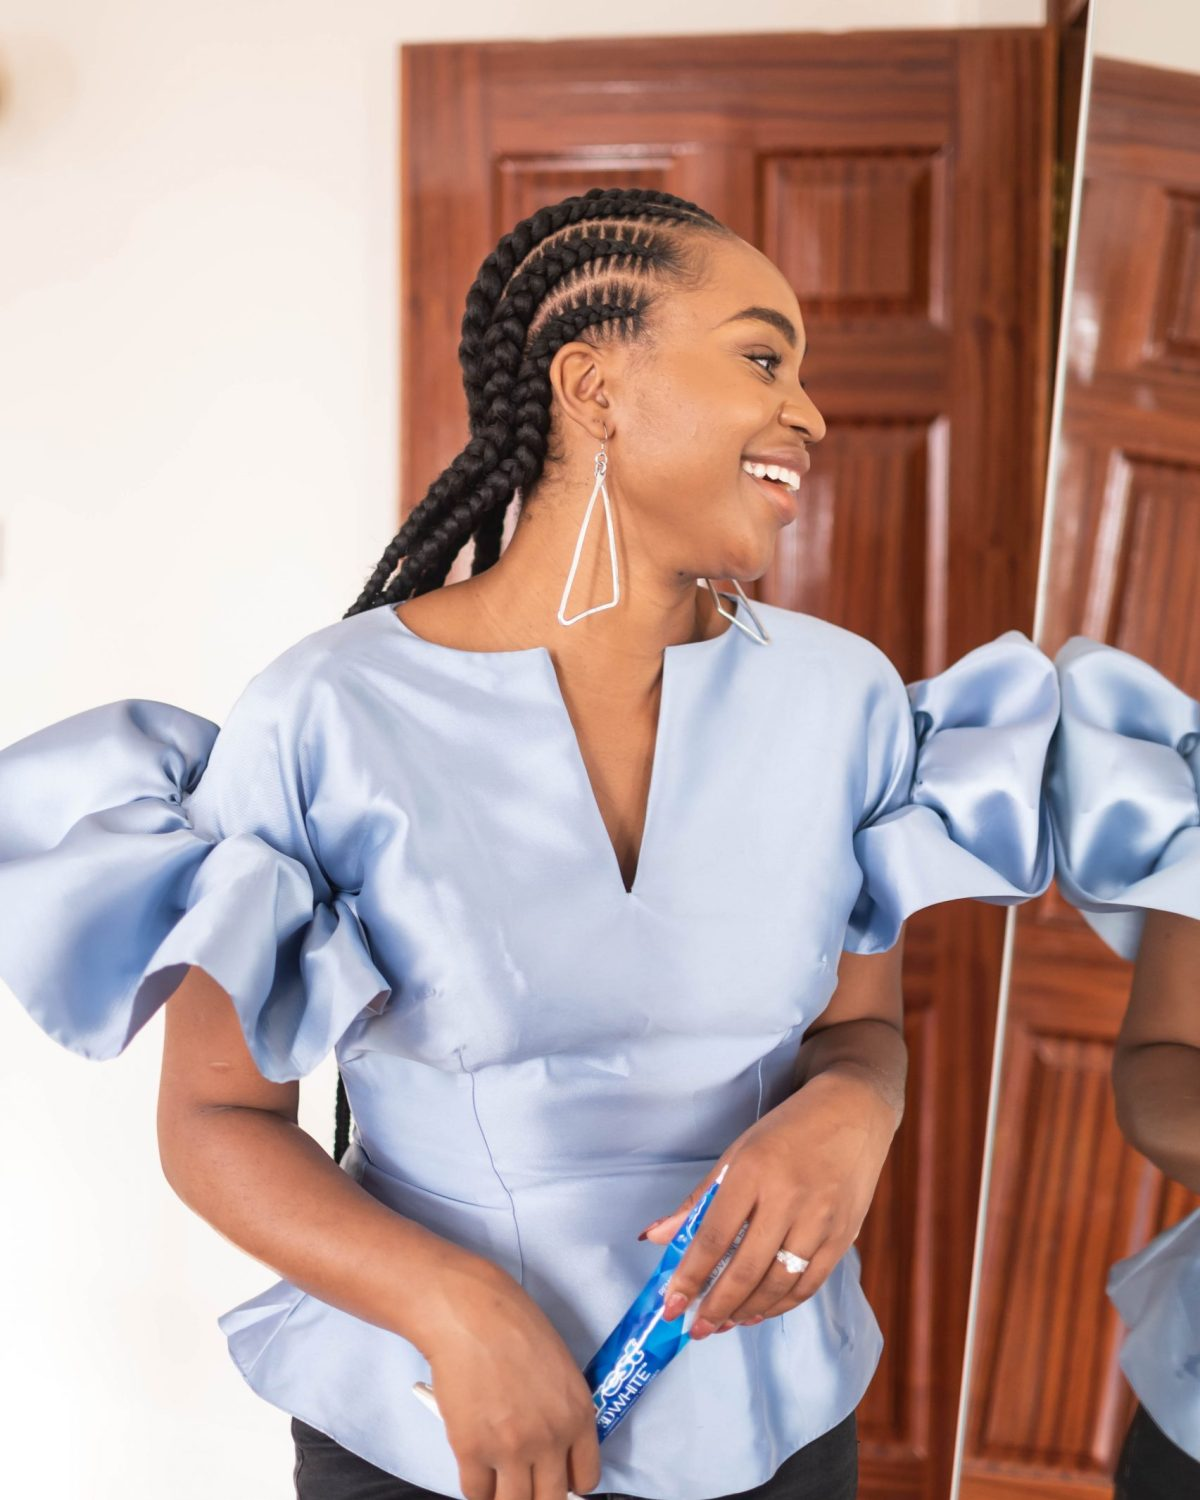 Ijeoma Kola smiling into mirror with Crest toothpaste in hand